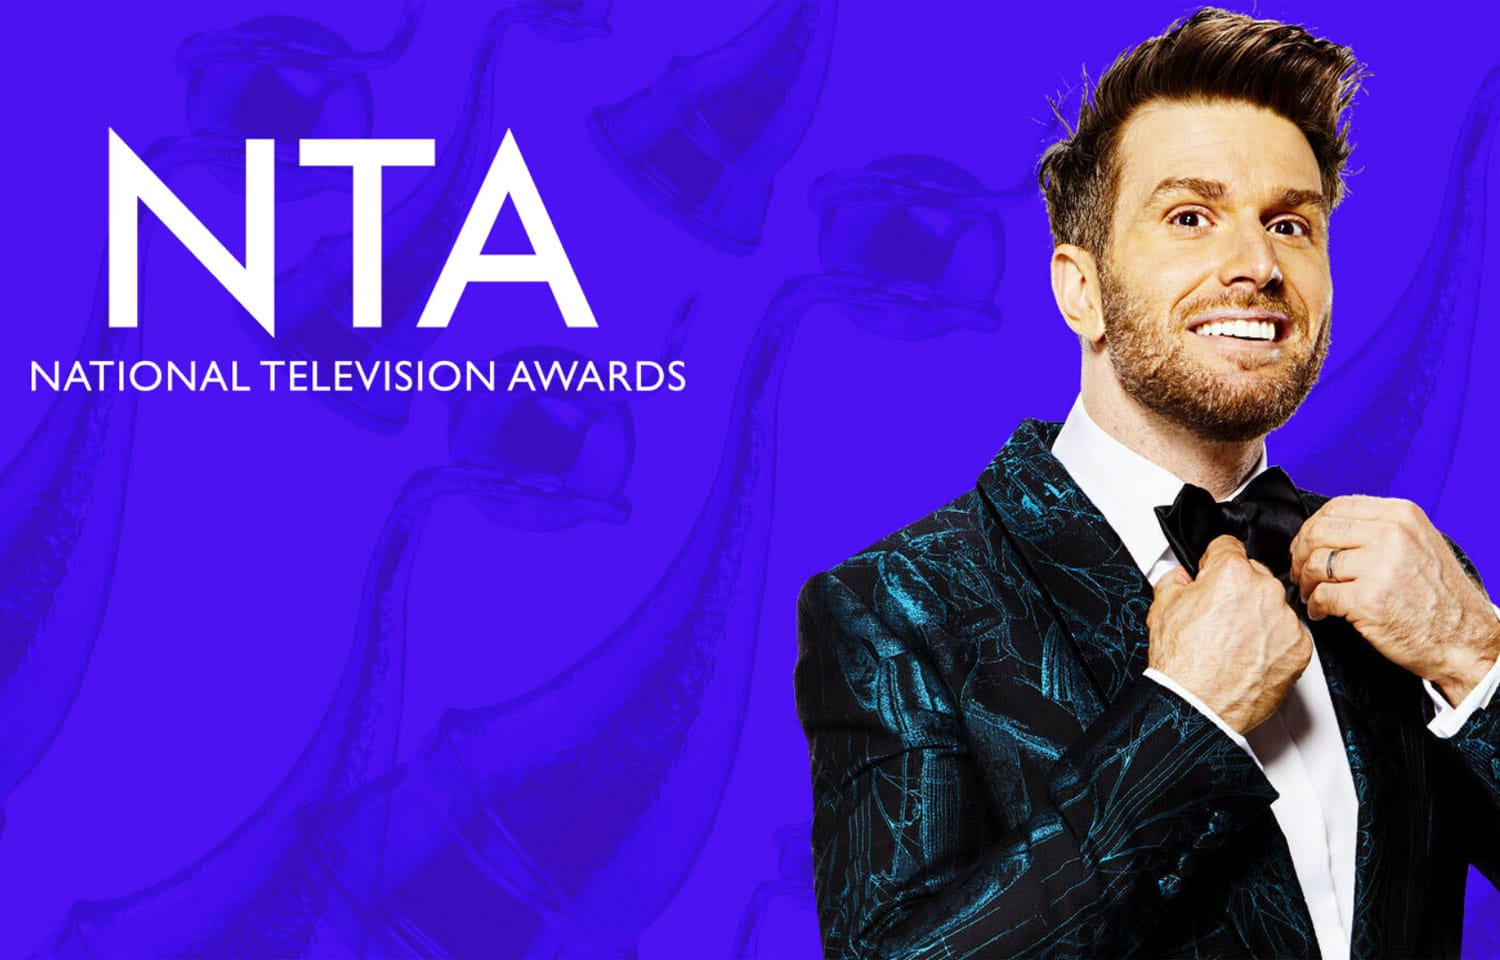 NATIONAL TELEVISION AWARDS 2021 NOMINEES ANNOUNCED